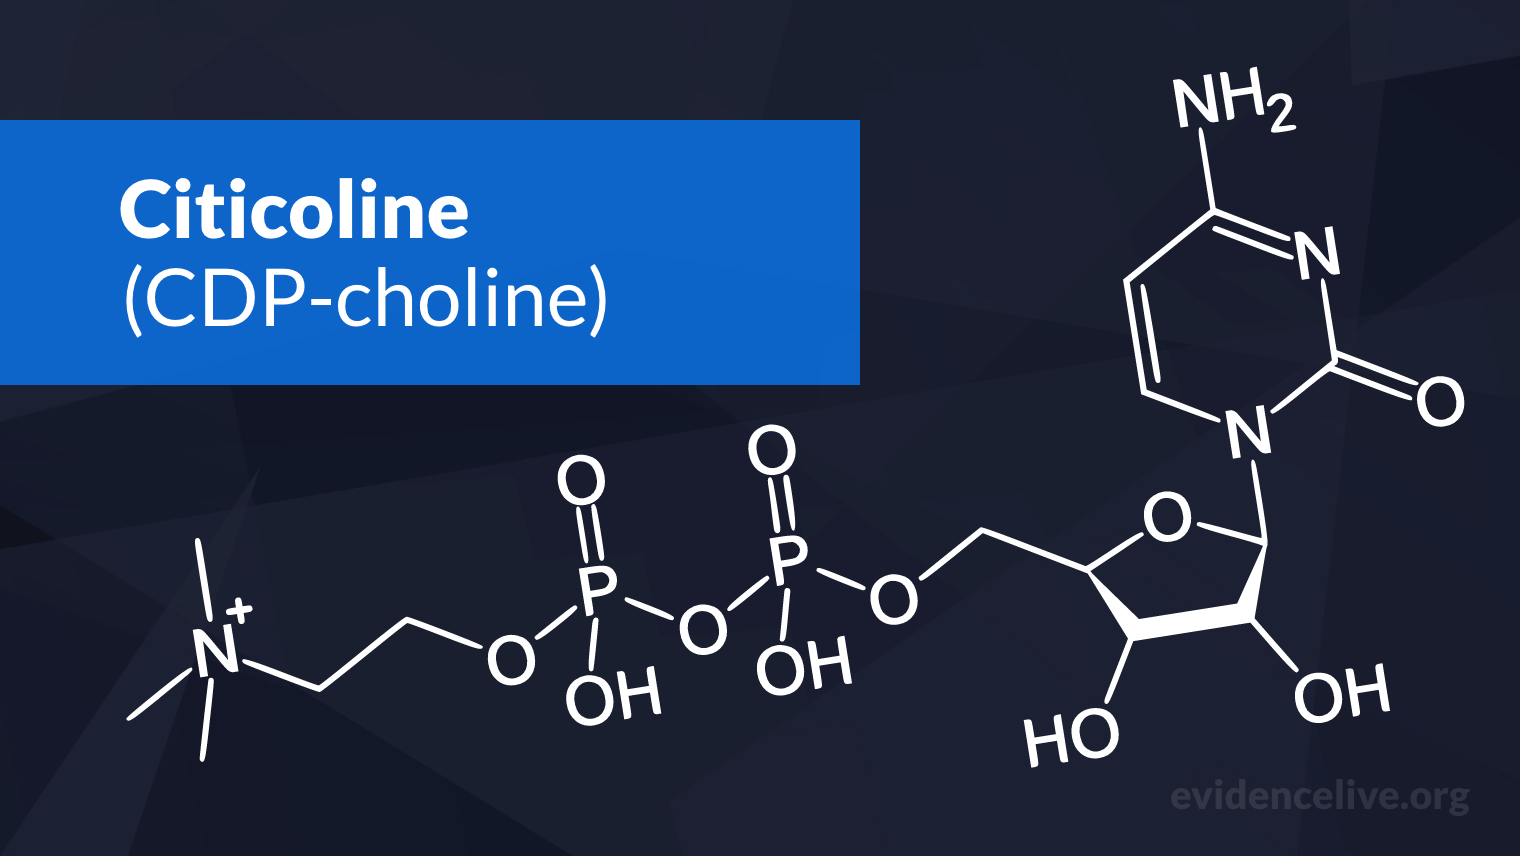 Benefits of Citicoline (CDP Choline): Does It Work for Brain Health?